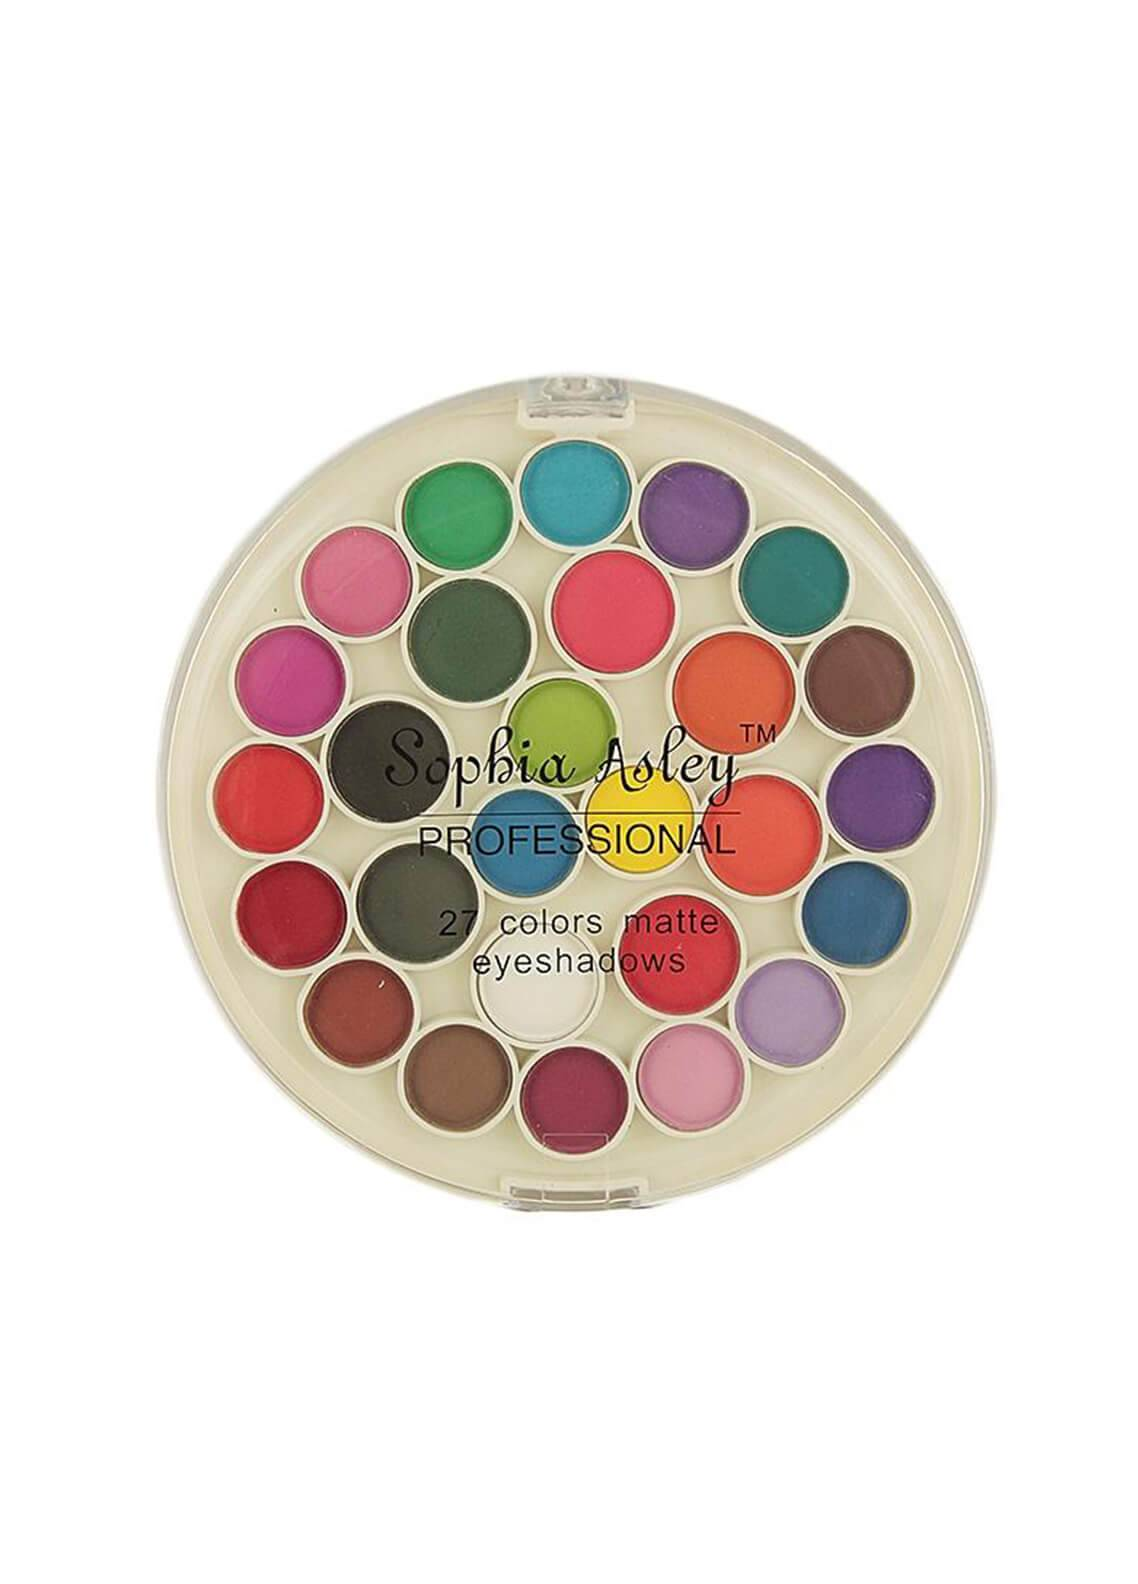 Sophia Asley Eye Shadow 27 Colors  - Matte